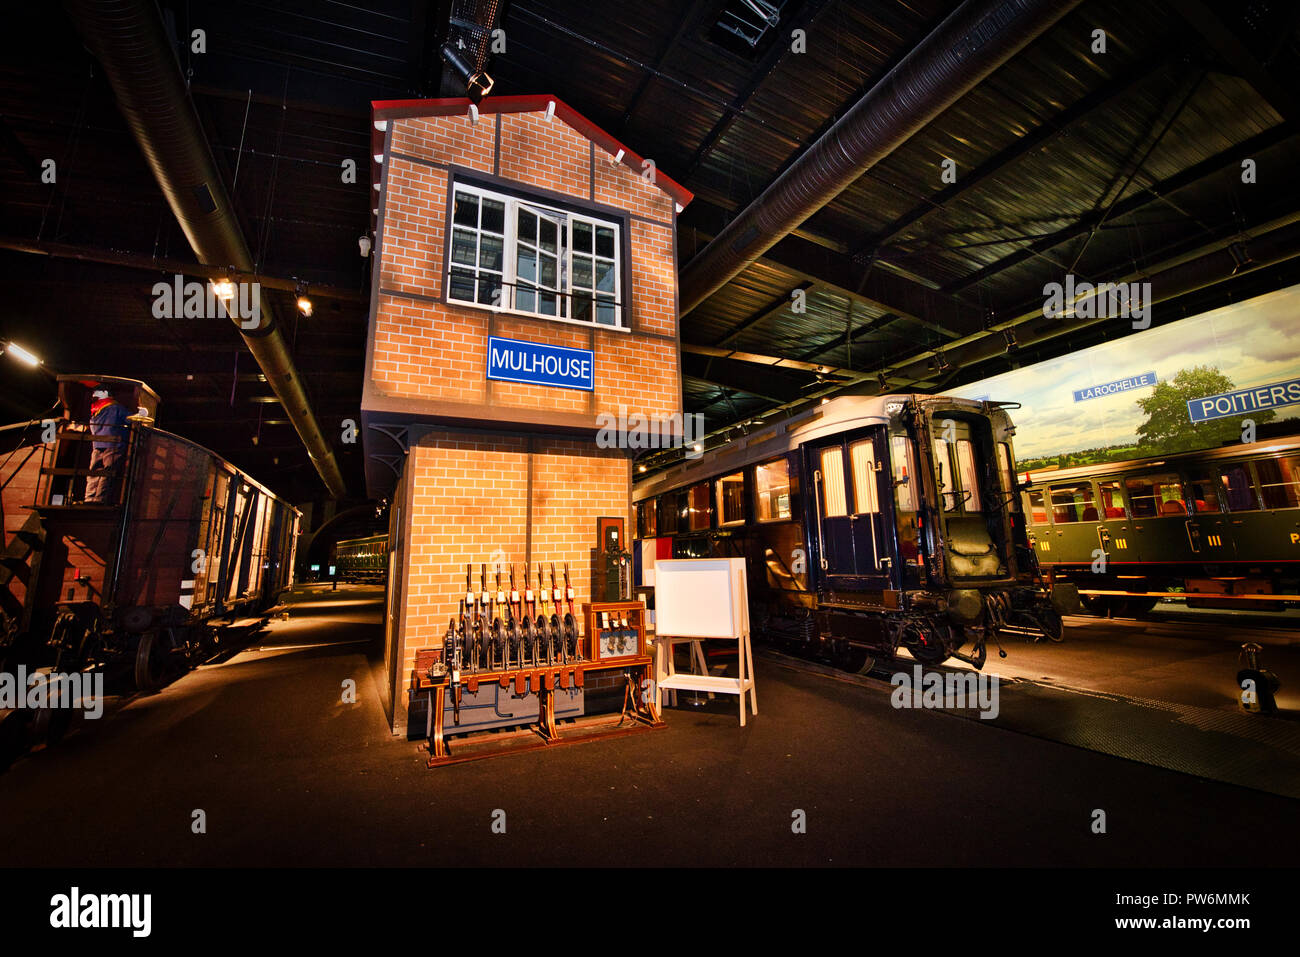 History Old Train Railway Museum Mulhouse France Stock Photo